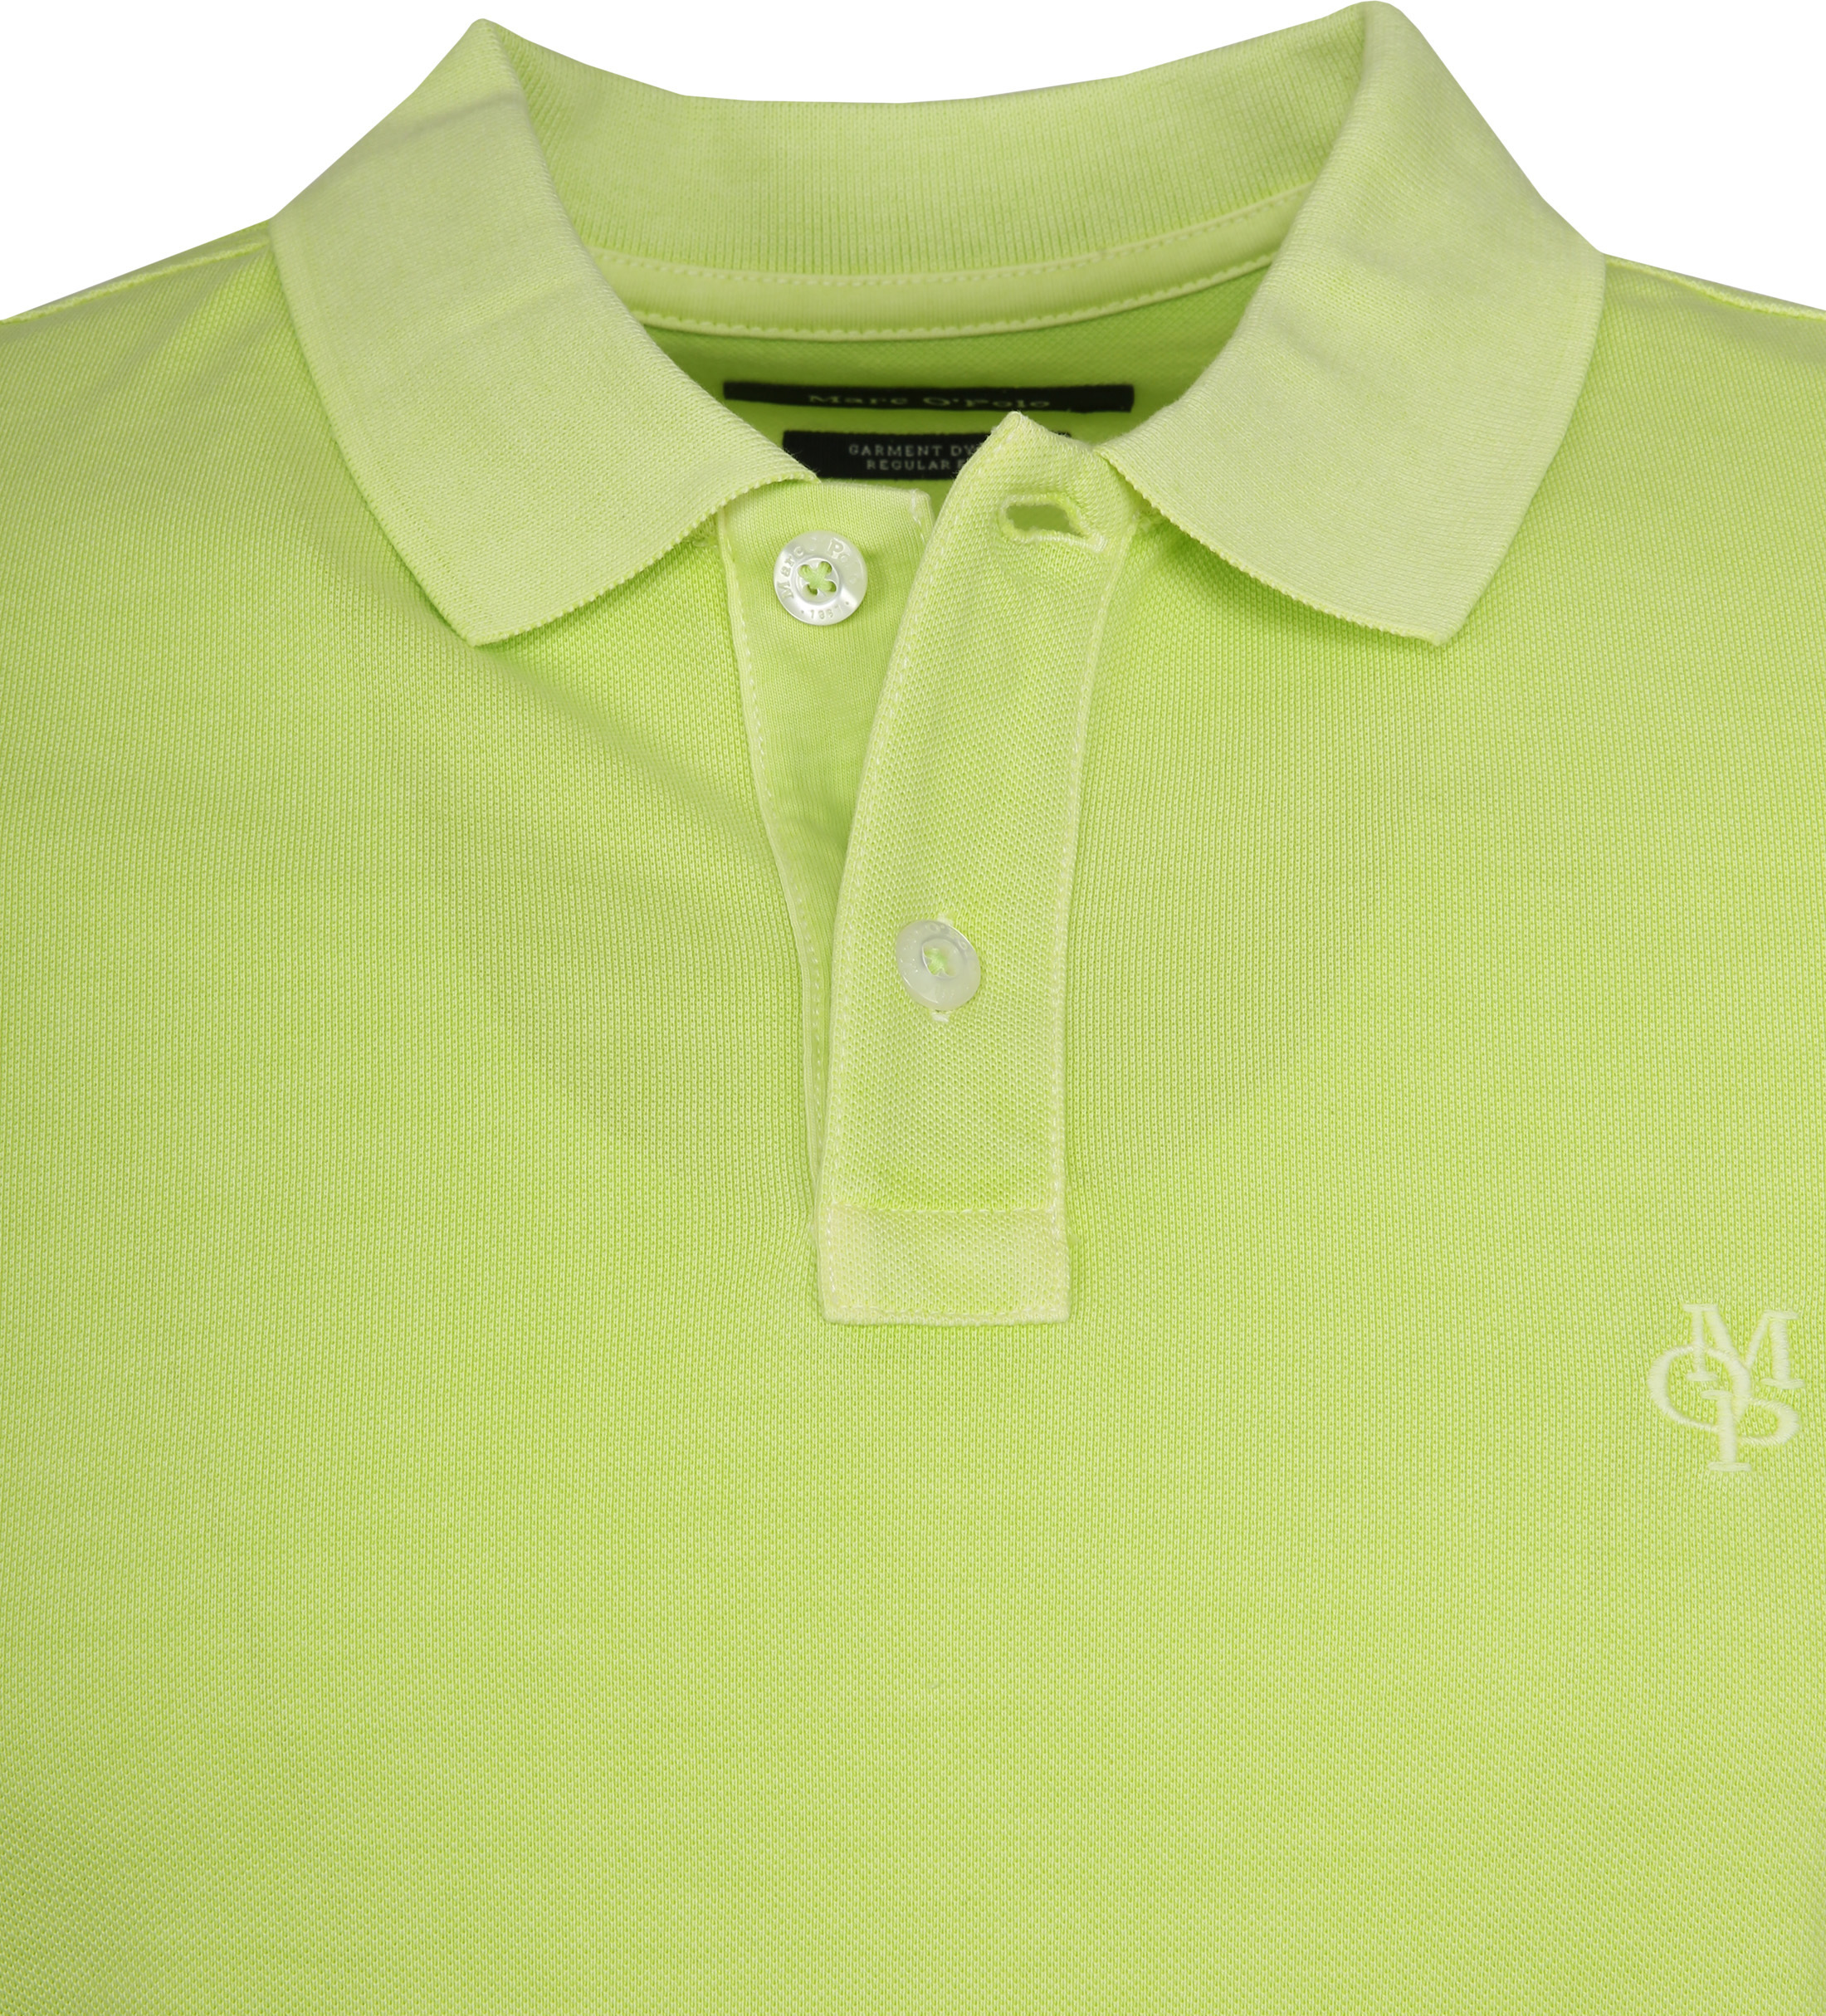 Marc O'Polo Poloshirt Garment Dyed Sharp Green foto 1